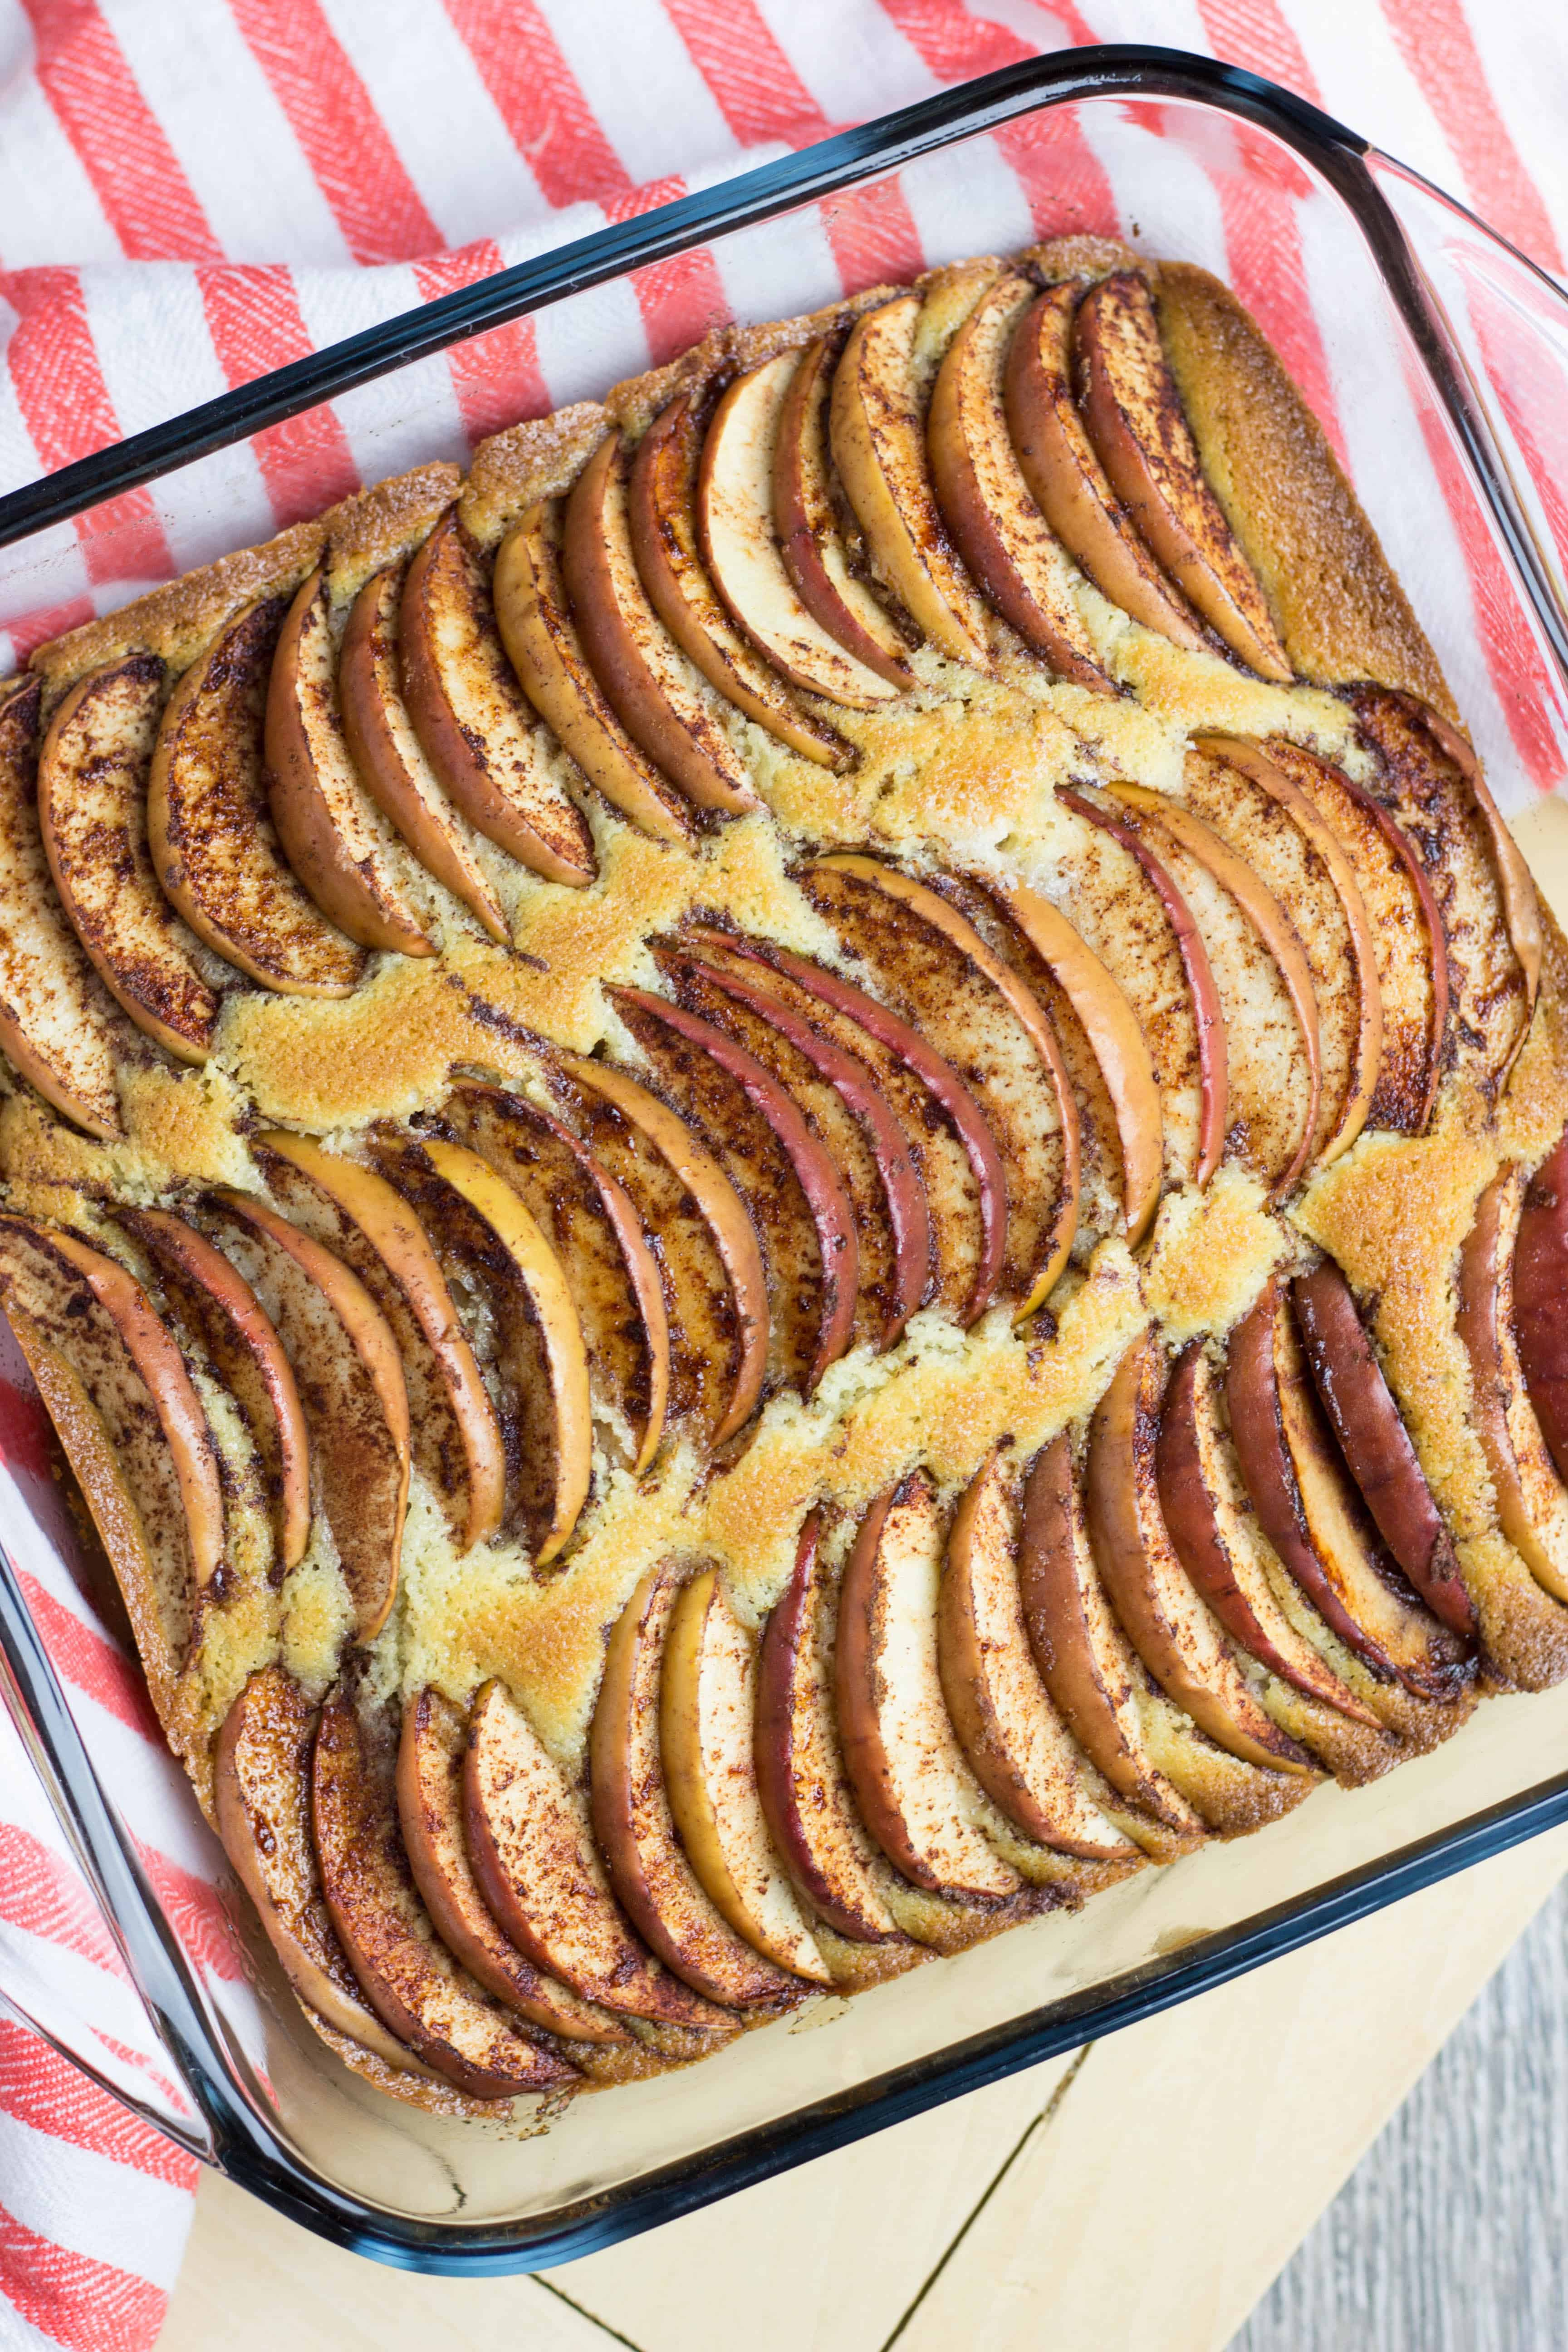 Apple Cinnamon Coffee Cake recipe has a scrumptious soft and buttery cake base, topped with aromatic sliced cinnamon apples. It is a great recipe for the holiday season which can be served as a dessert, or for breakfast.